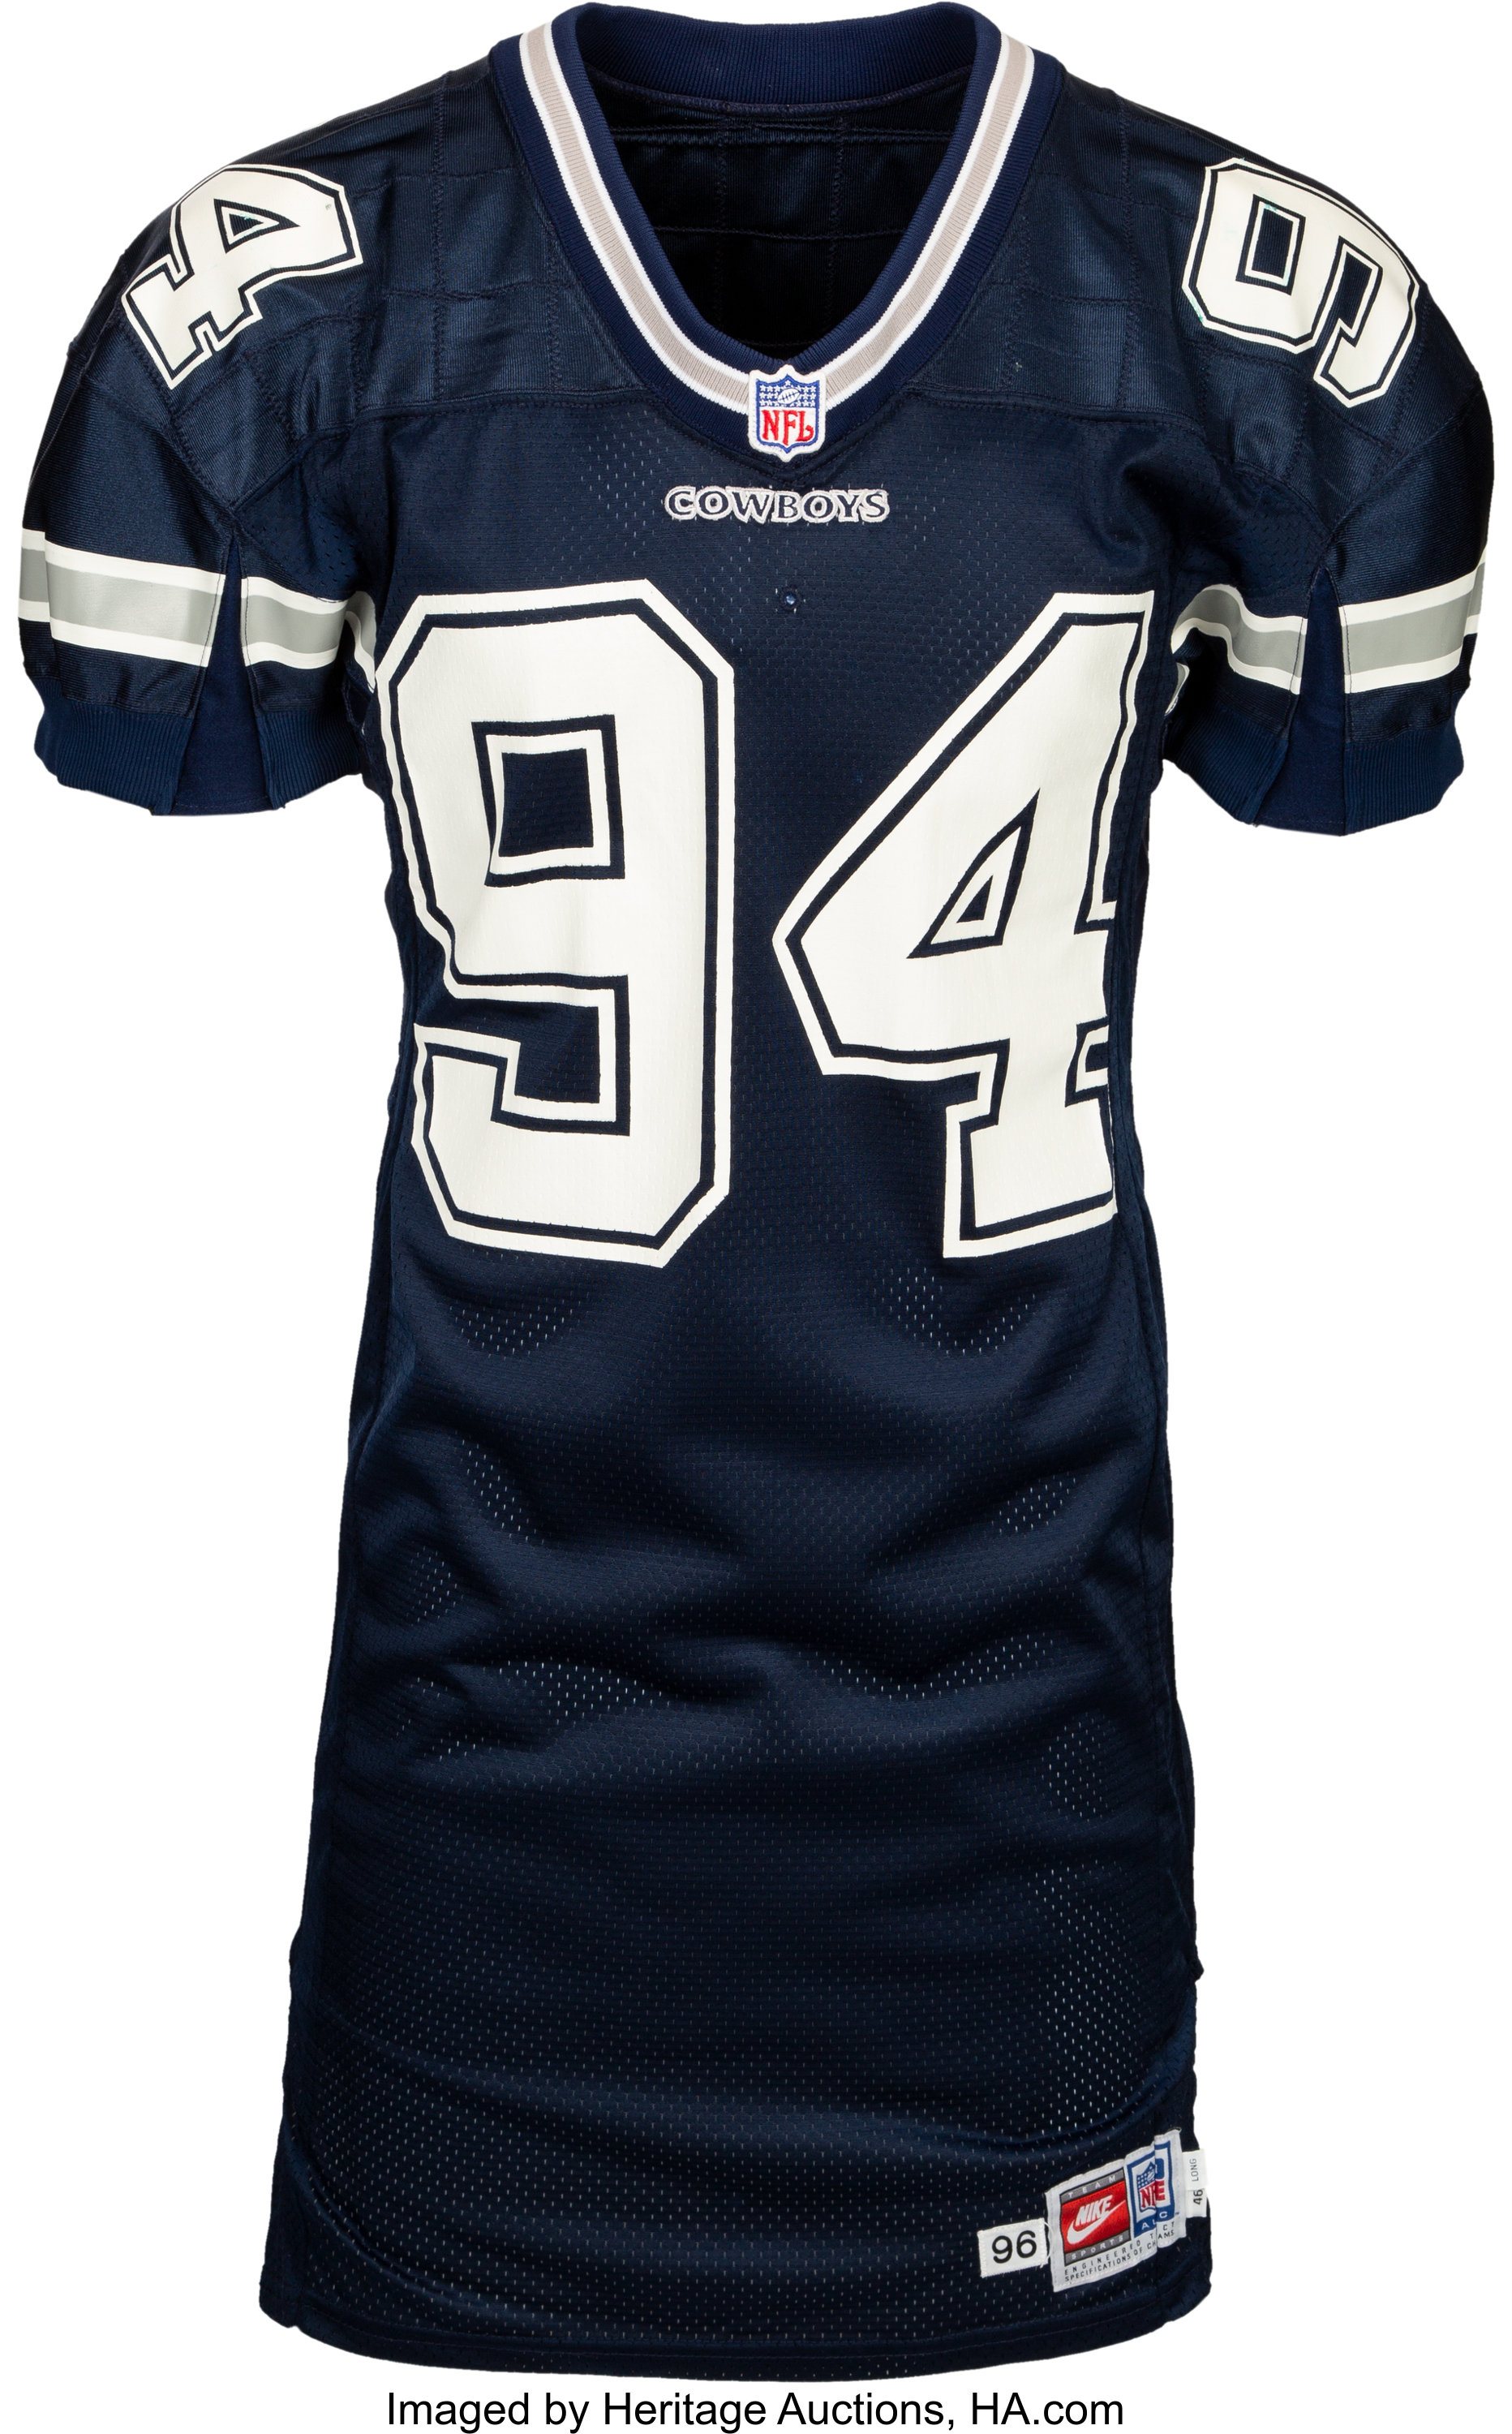 check out d3629 da5ab 1996 Charles Haley Game Worn Dallas Cowboys Jersey - Used 10/27 vs. | Lot  #56593 | Heritage Auctions